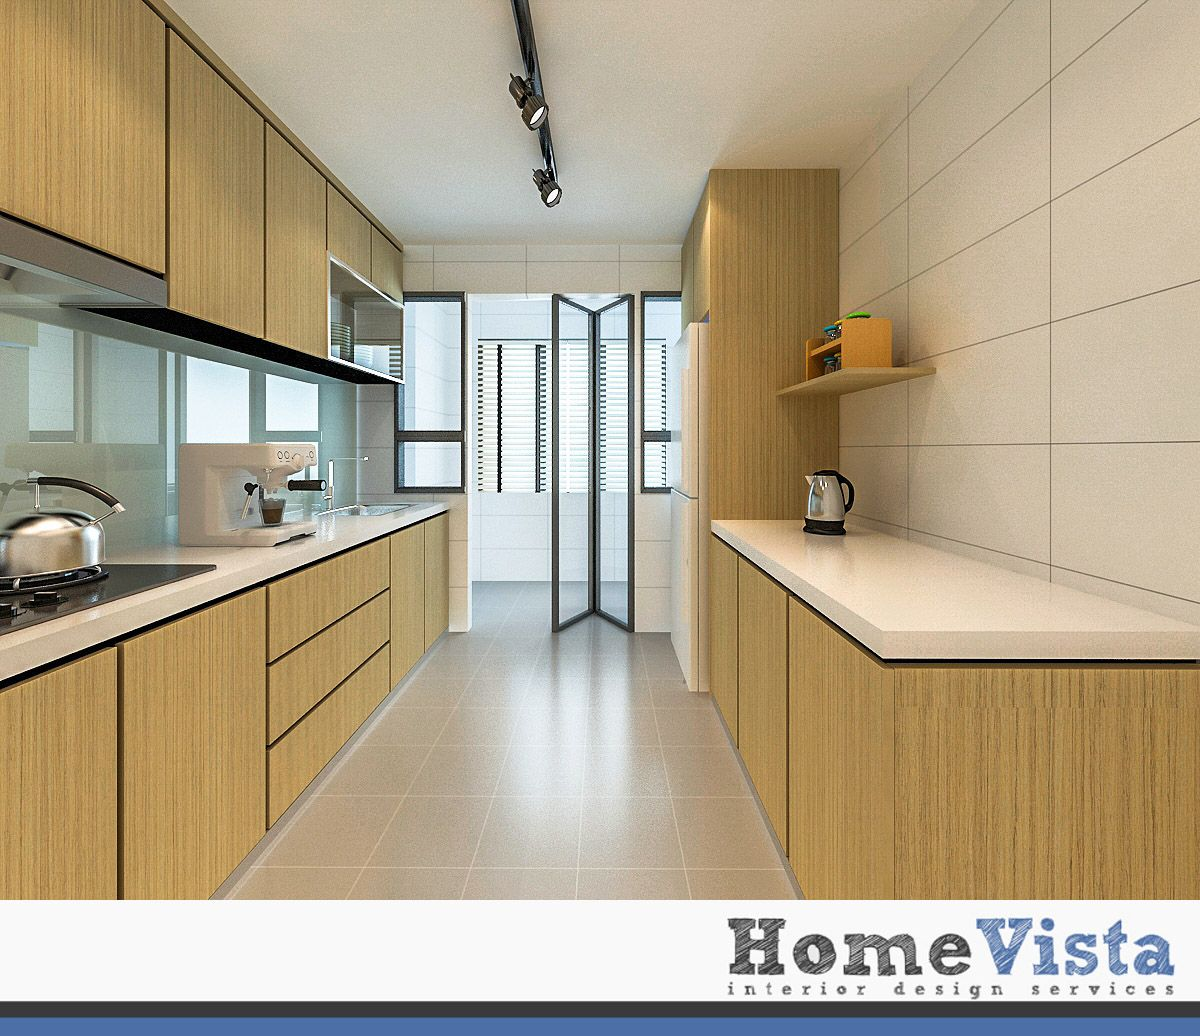 4 room hdb bto - punggol bto - homevista | kitchen design ideas in